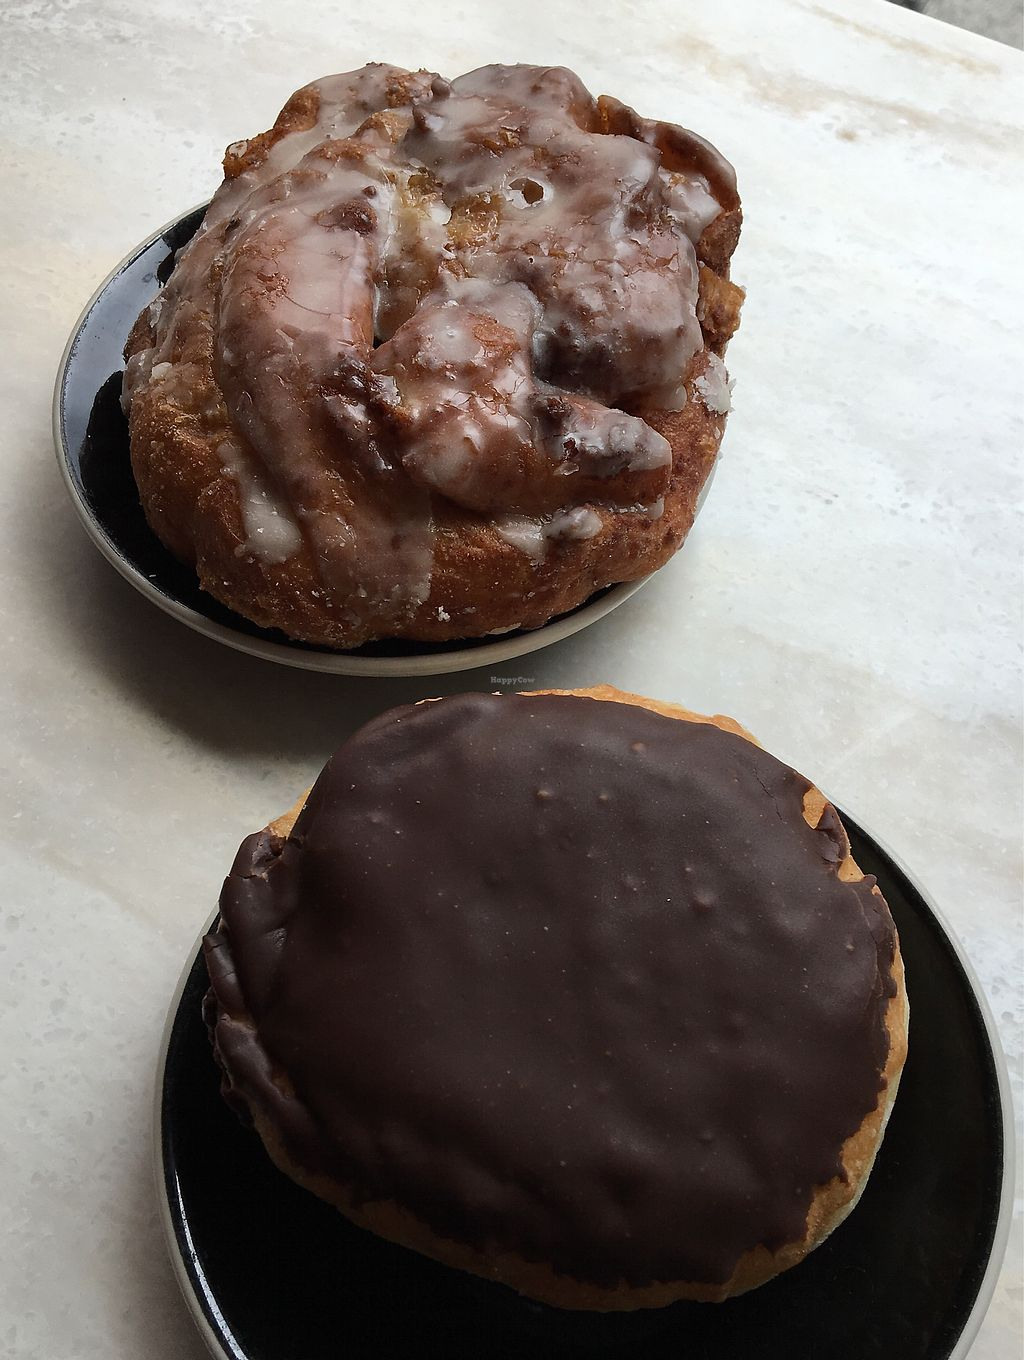 """Photo of Sweet Freedom Bakery  by <a href=""""/members/profile/Thepennsyltuckyvegan"""">Thepennsyltuckyvegan</a> <br/>apple fritter and Boston Creme <br/> June 21, 2017  - <a href='/contact/abuse/image/20302/271922'>Report</a>"""